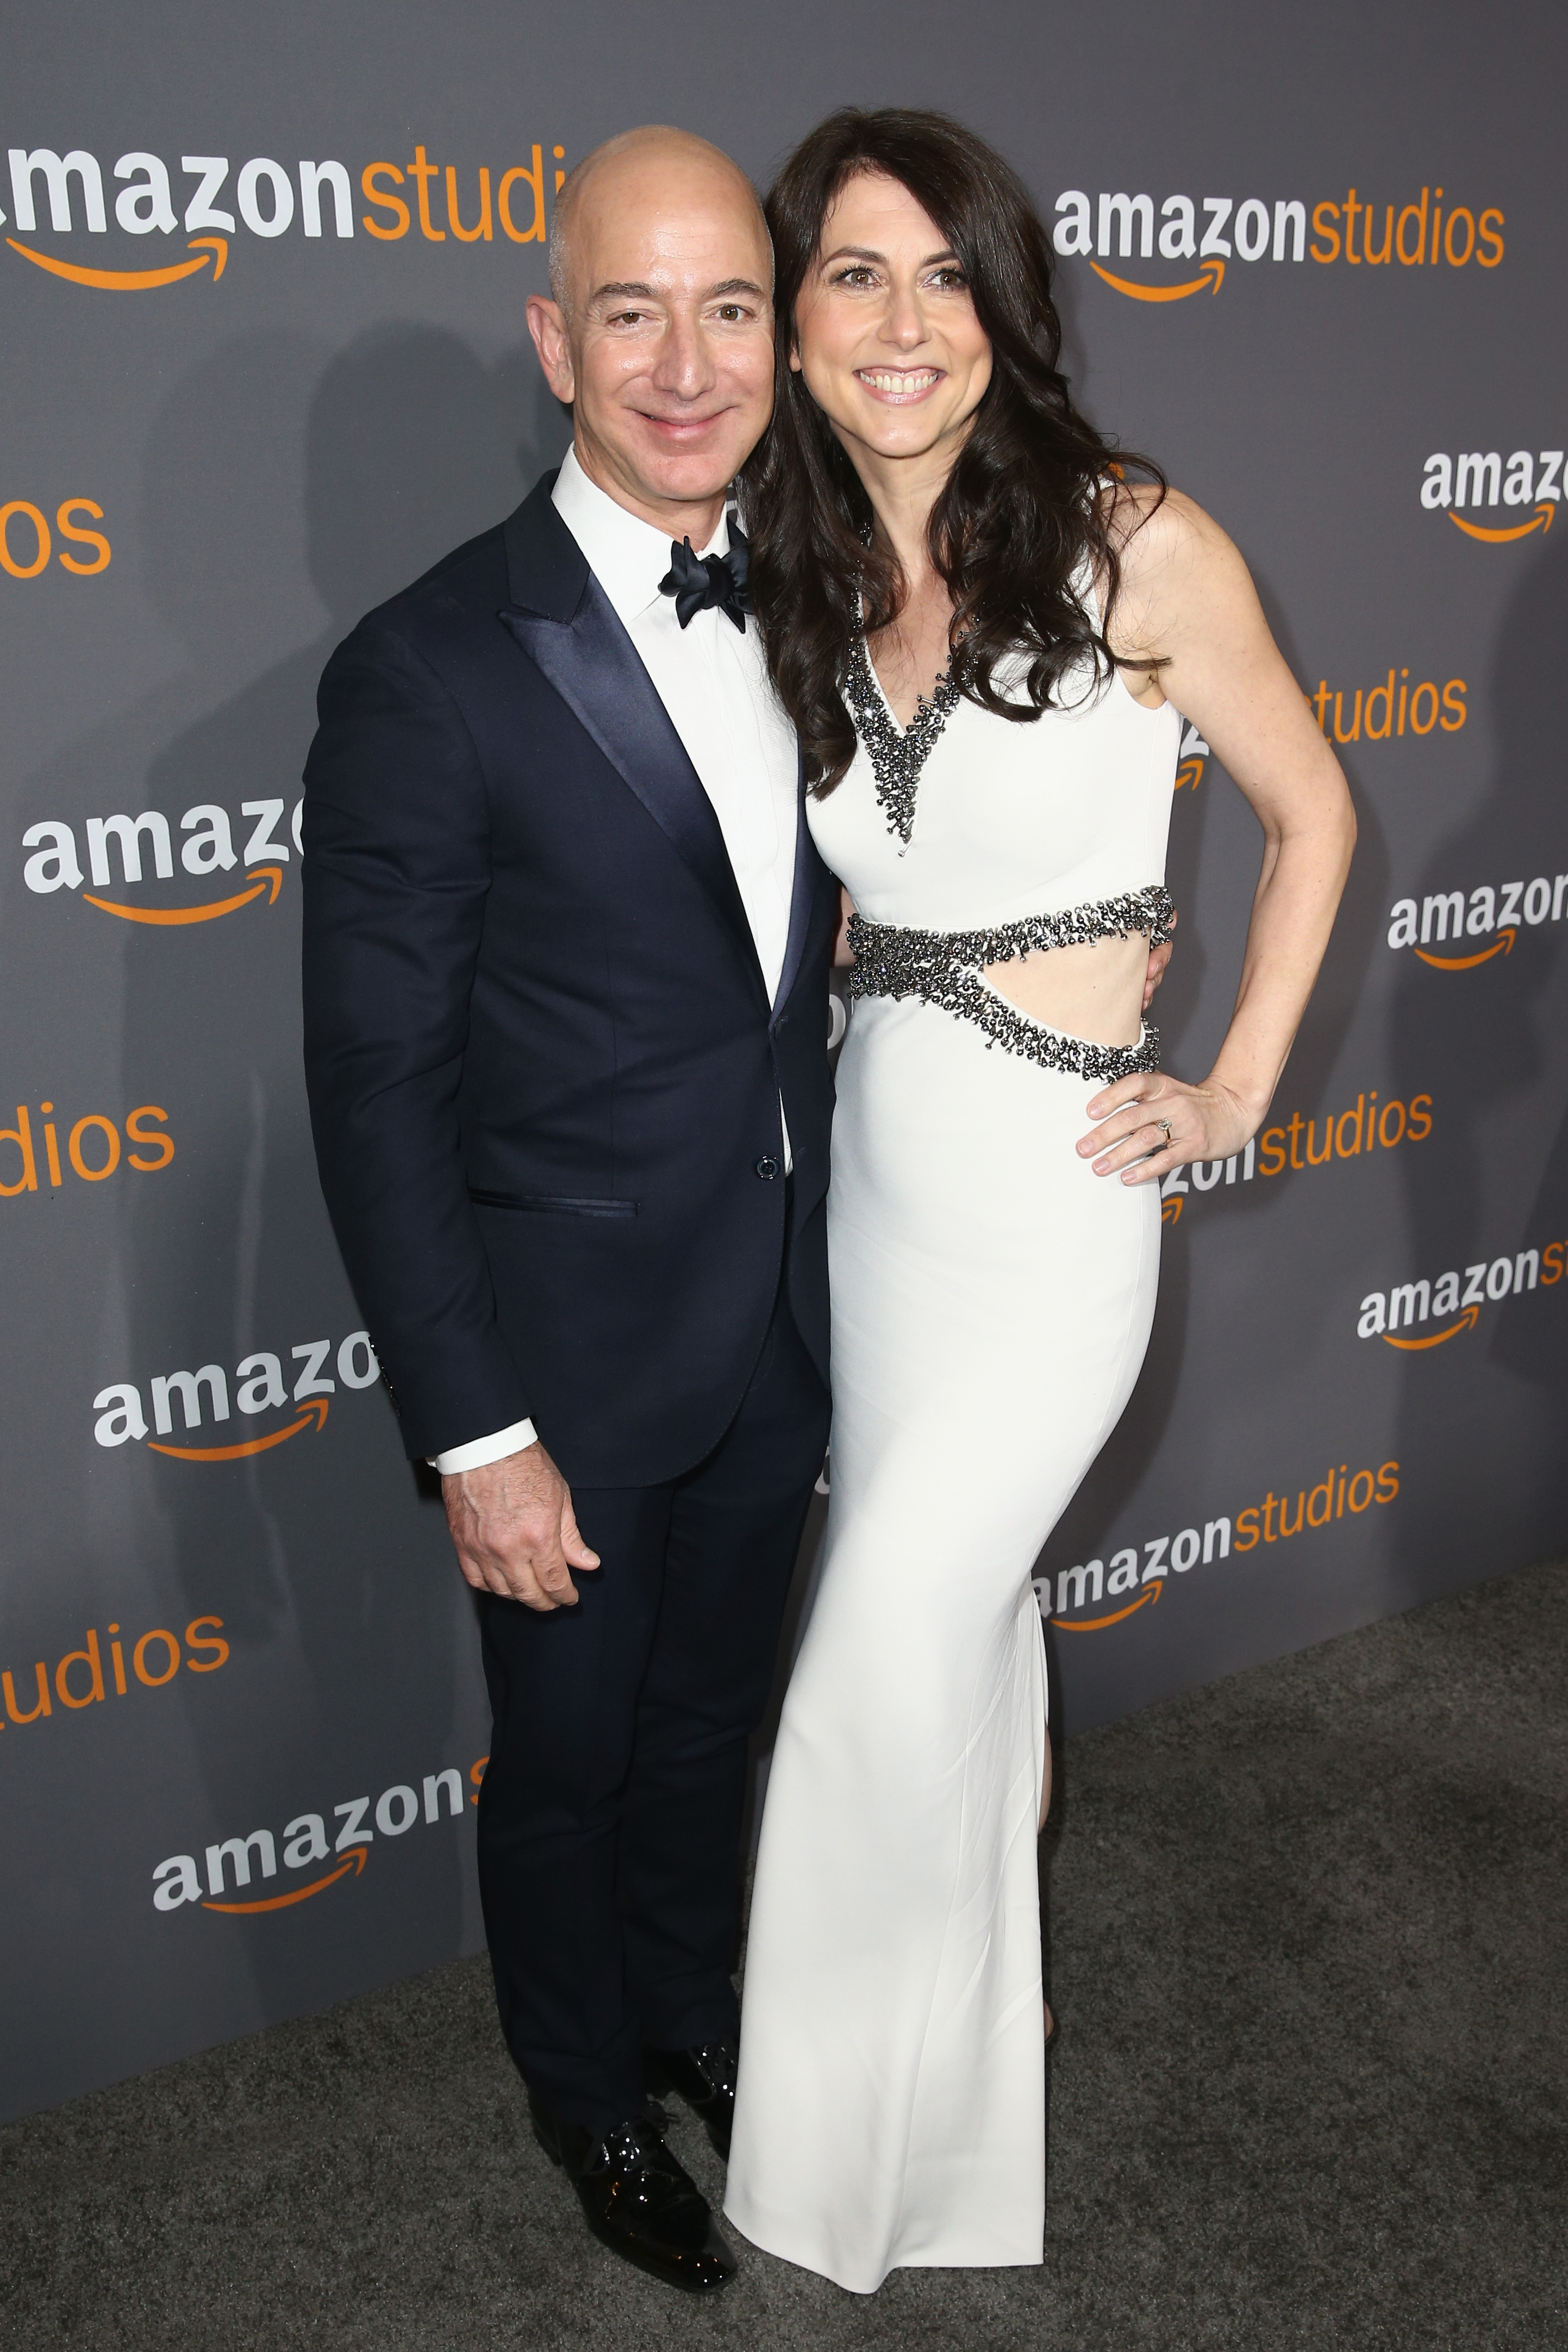 Amazon Founder/CEO Jeff Bezos (L) and MacKenzie Bezos attend Amazon Studios Golden Globes Celebration at The Beverly Hilton Hotel on January 8, 2017, in Beverly Hills, California. (Getty)